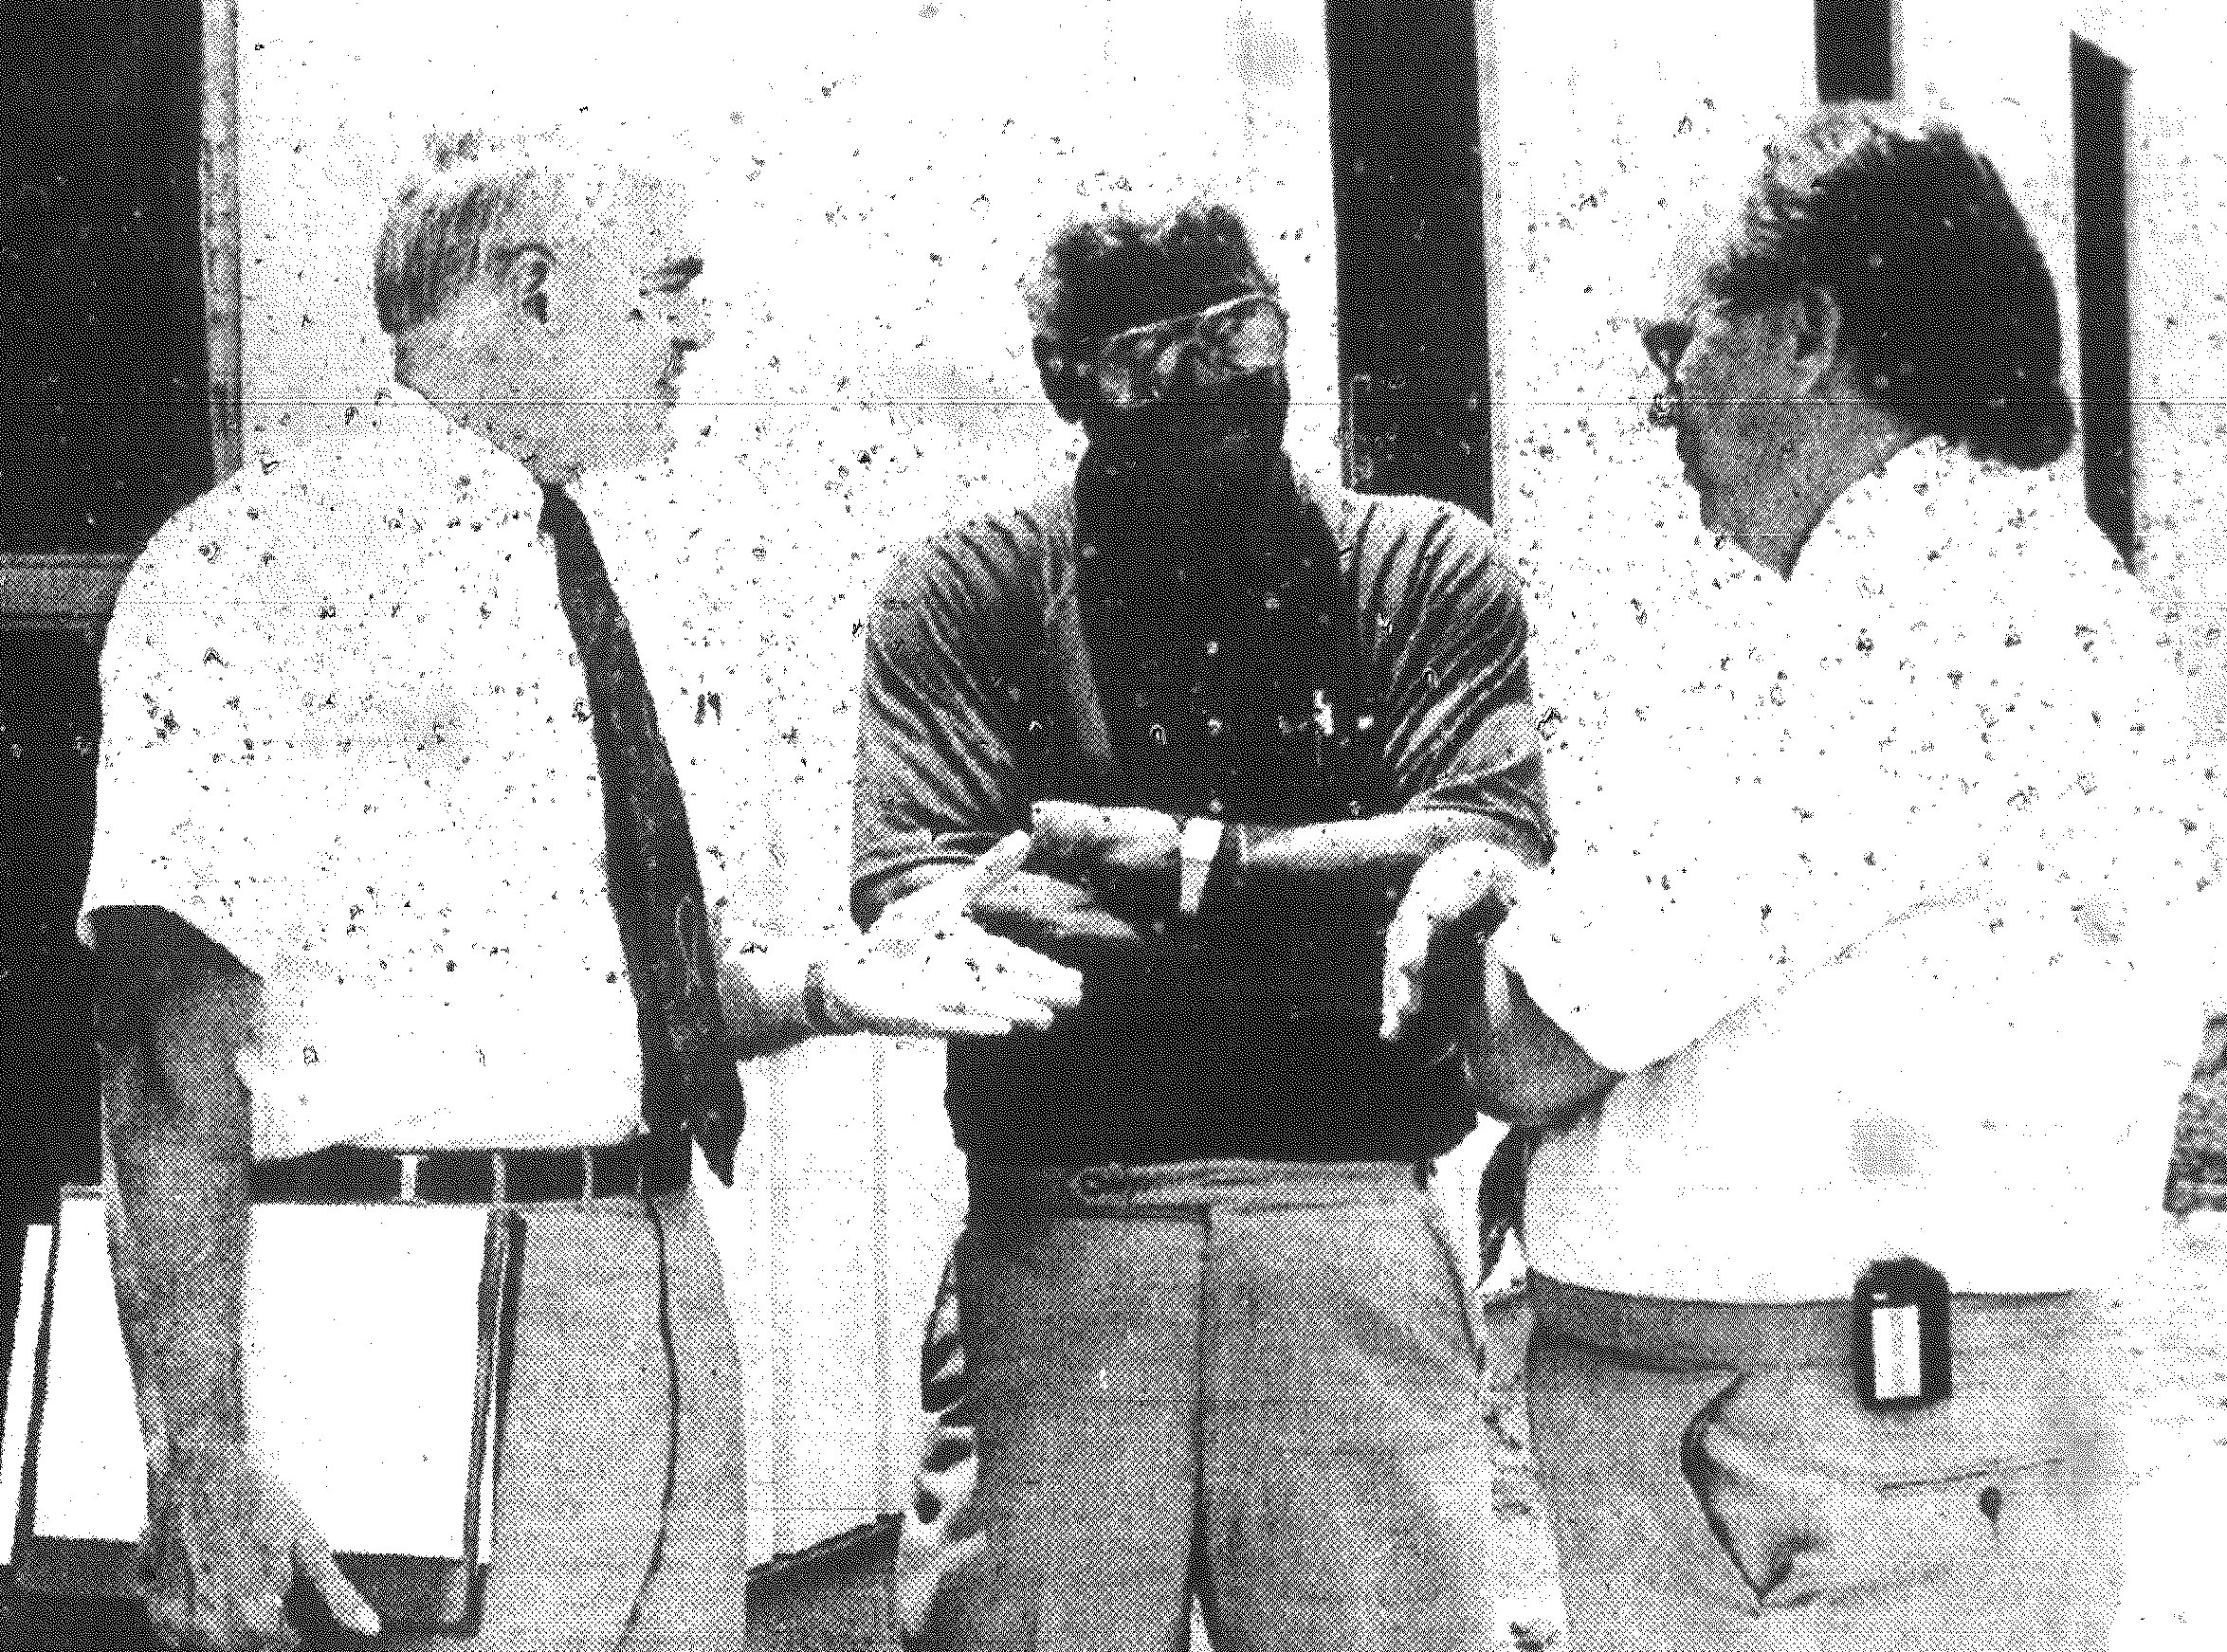 1992 - From left, Sumter County Councilman Chuck Fienning, Sumter Jail Population Committee Chairman Earl Vaughn and Sumter County Correctional Center Director Jerry Hyatt discuss the construction of a 7,500-square-foot addition to the Sumter County Jail. The addition is scheduled to open Sept. 1.